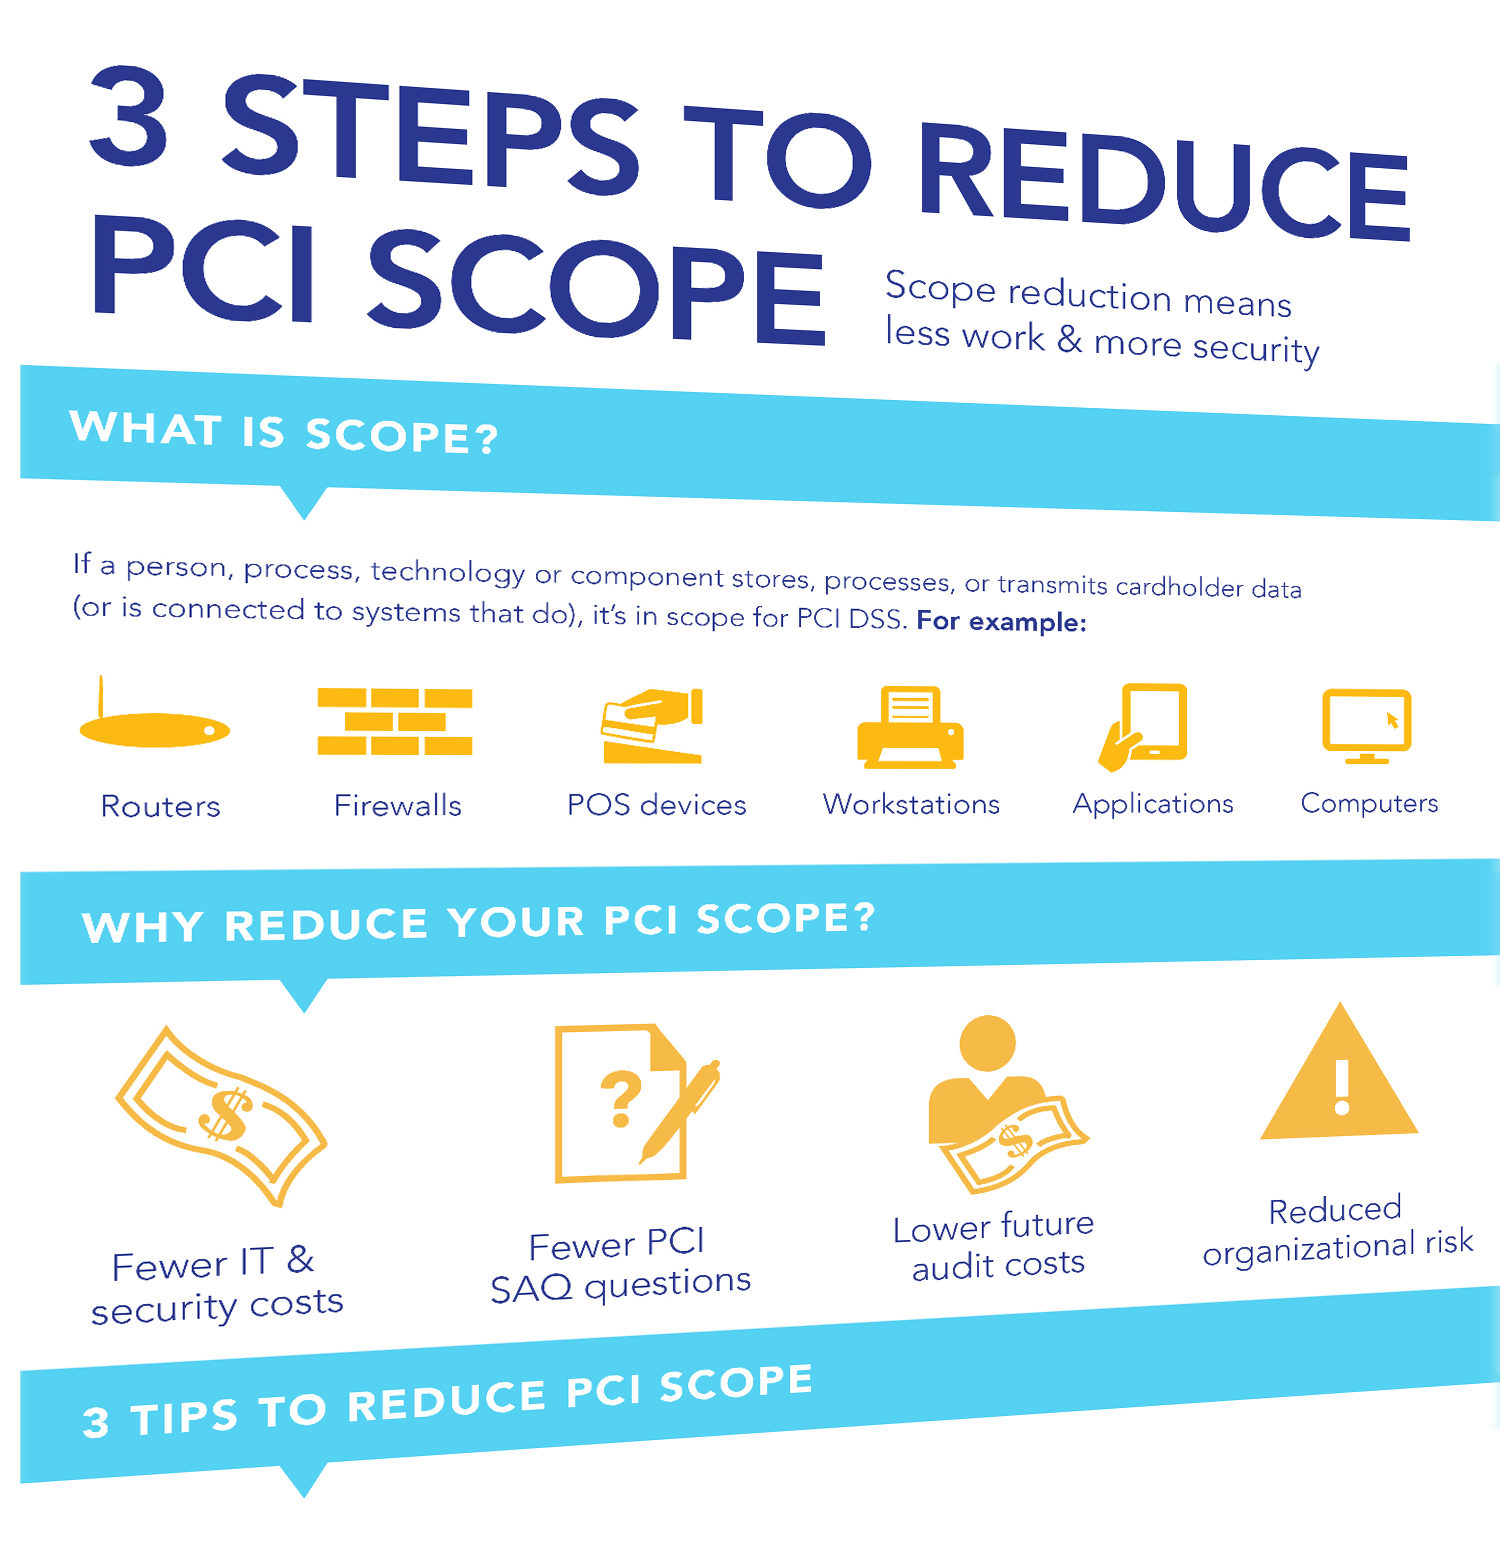 3 Steps to Reduce PCI Scope